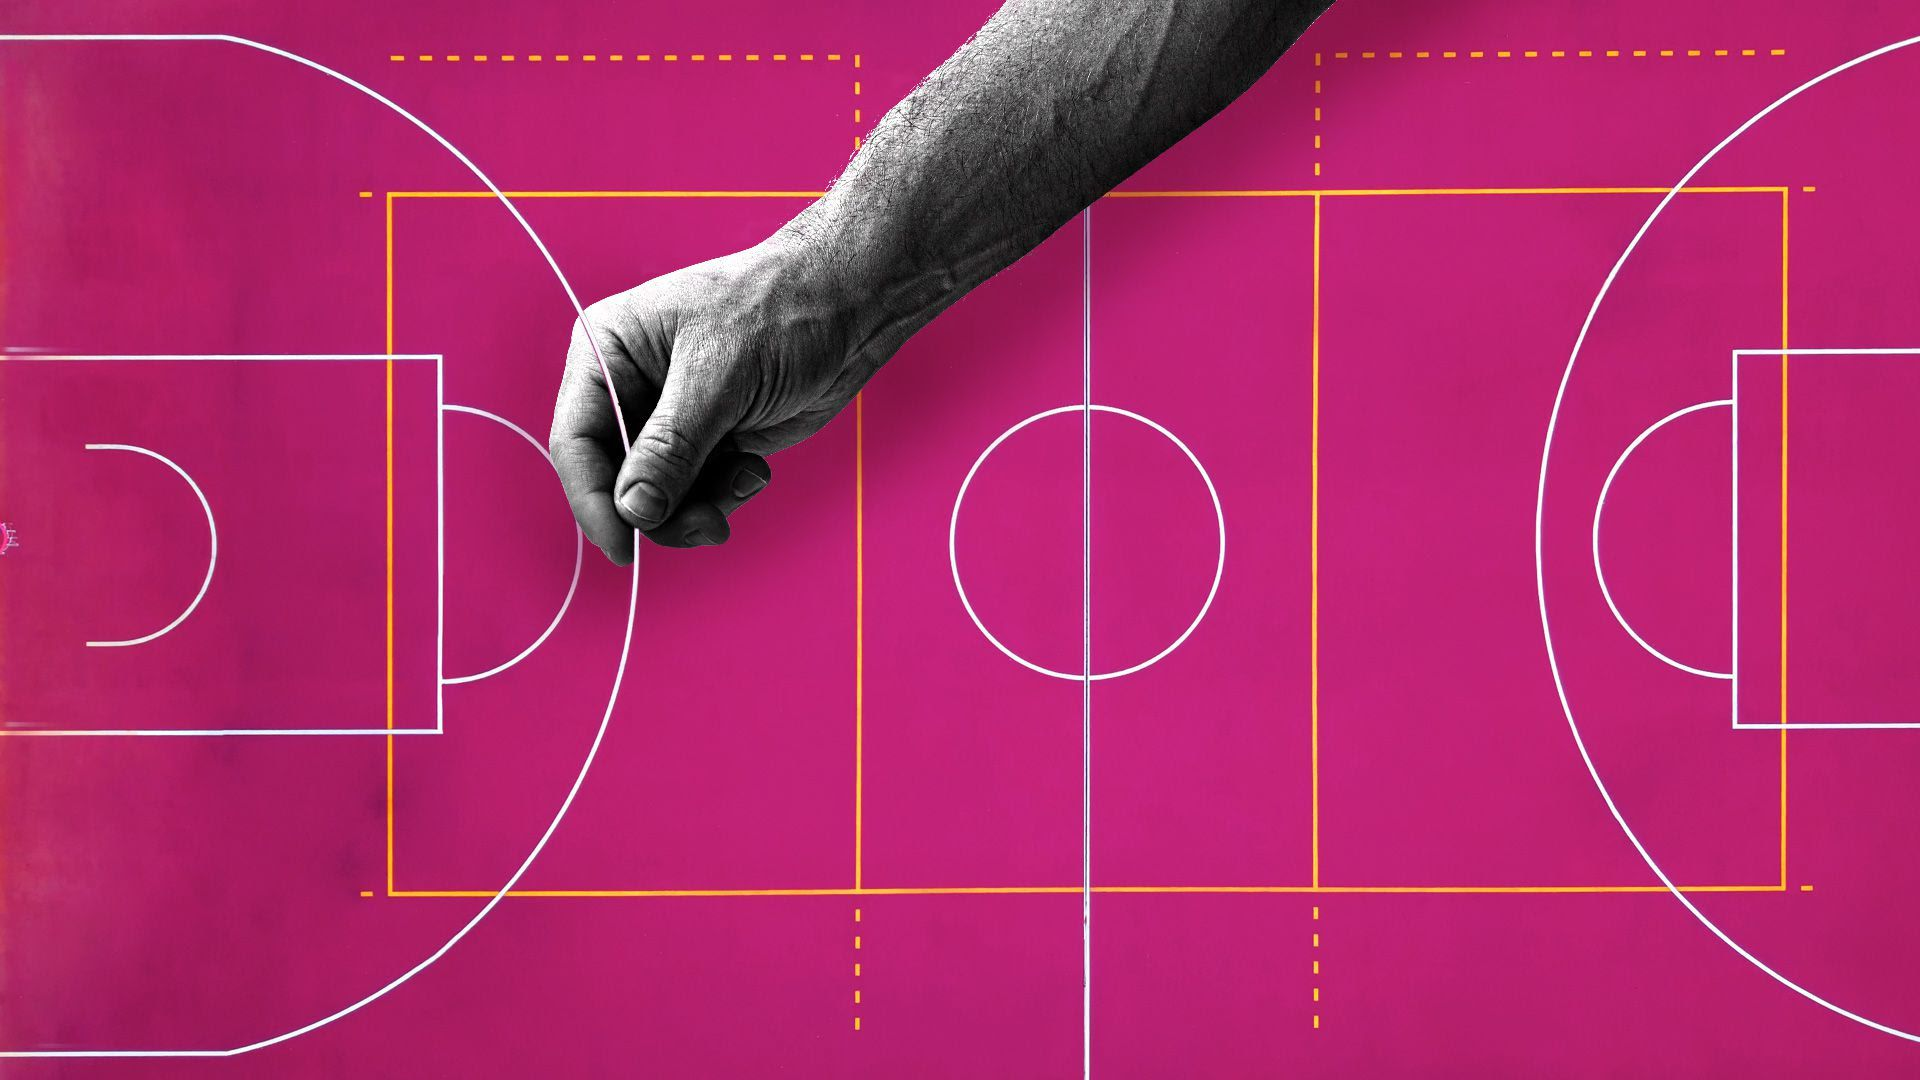 Illustration of a hand moving the 3-point line on a basketball court